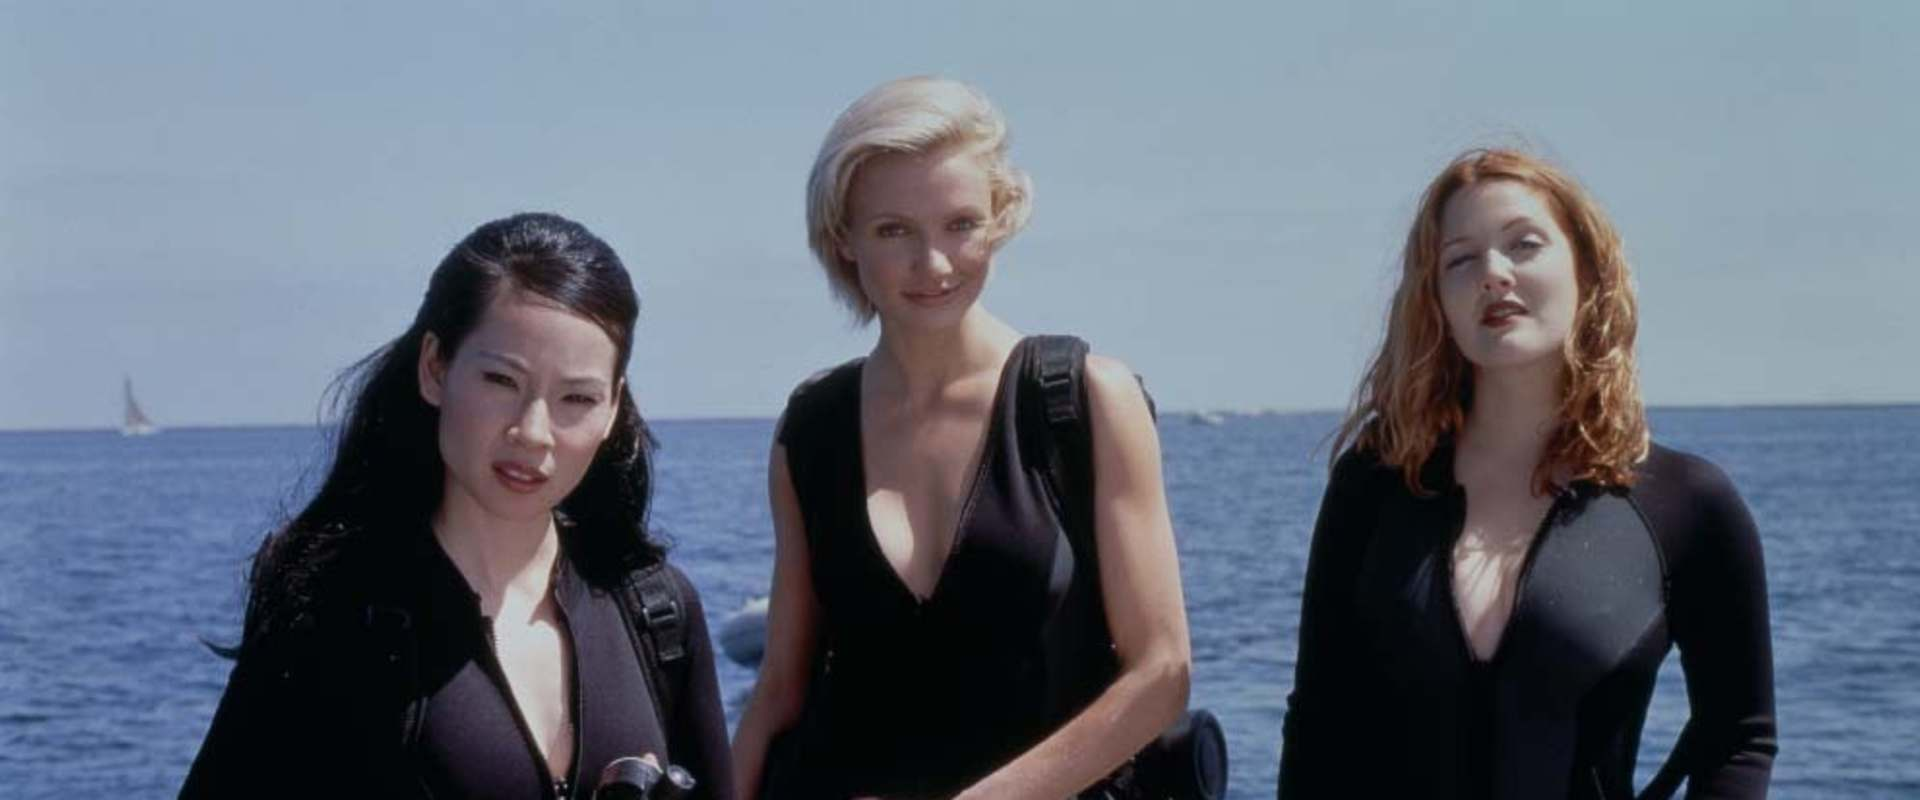 Charlie's Angels background 2